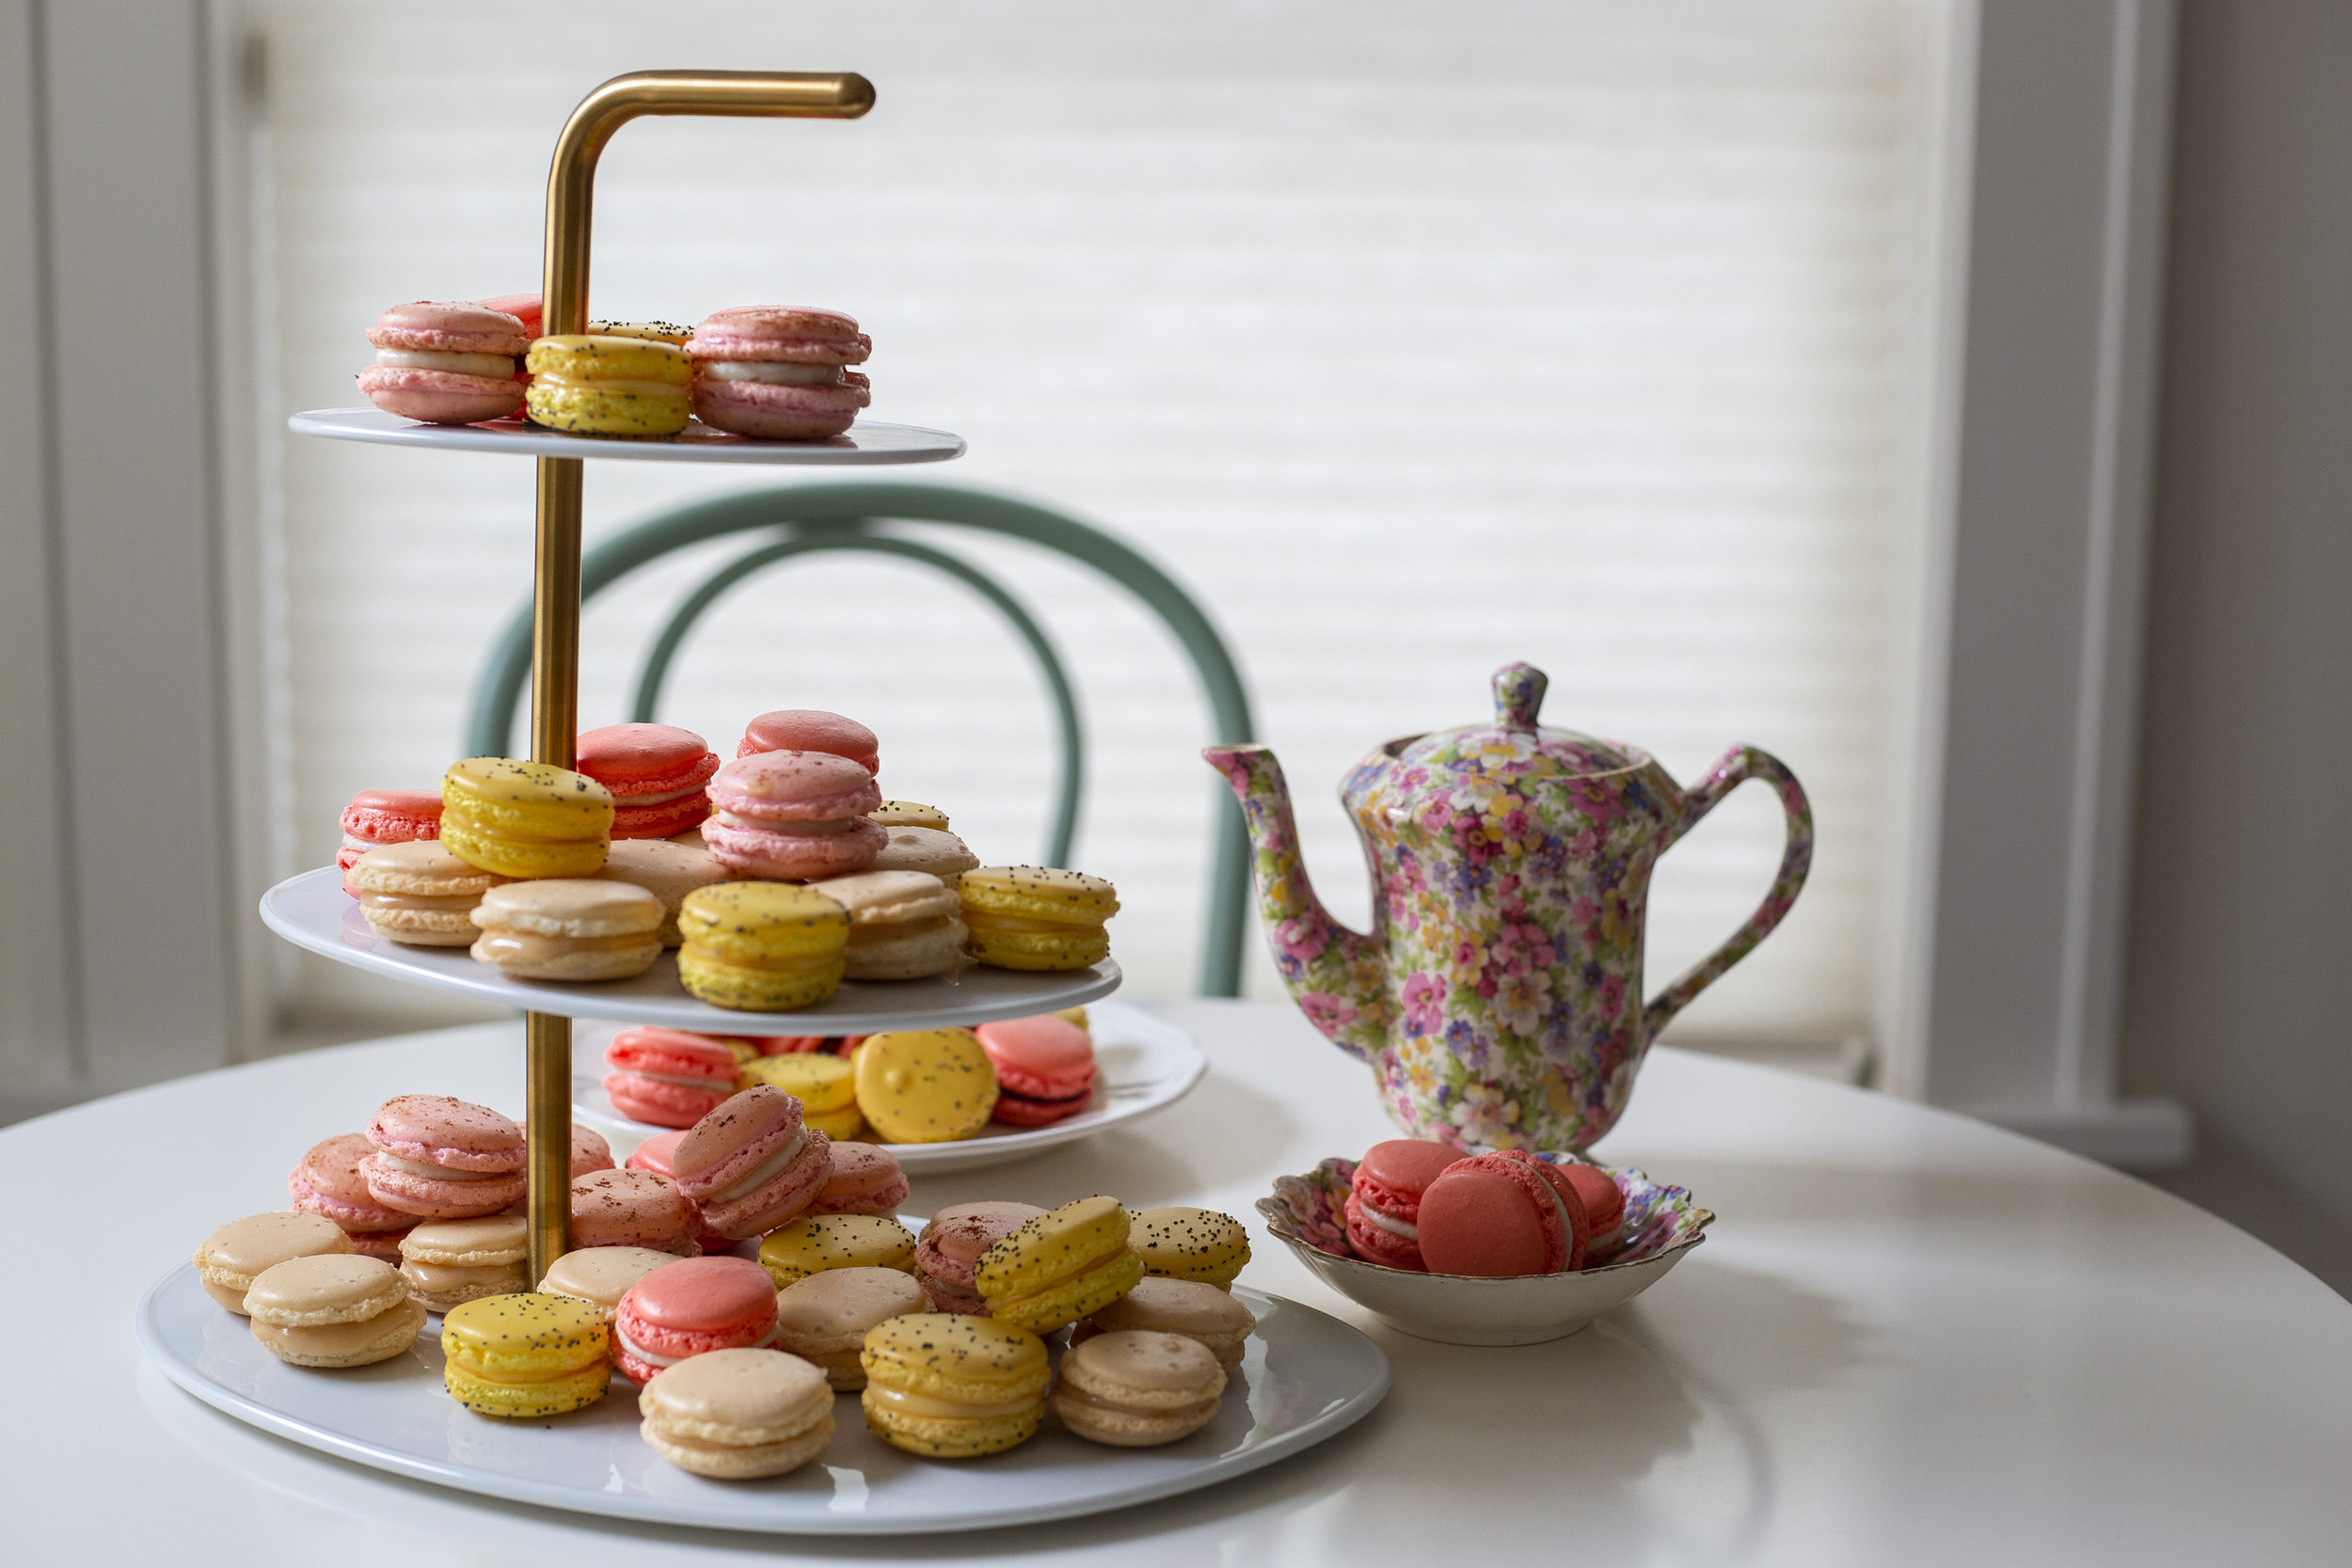 Our Wedding Tier holds up to 50 macarons for your event and costs $25.